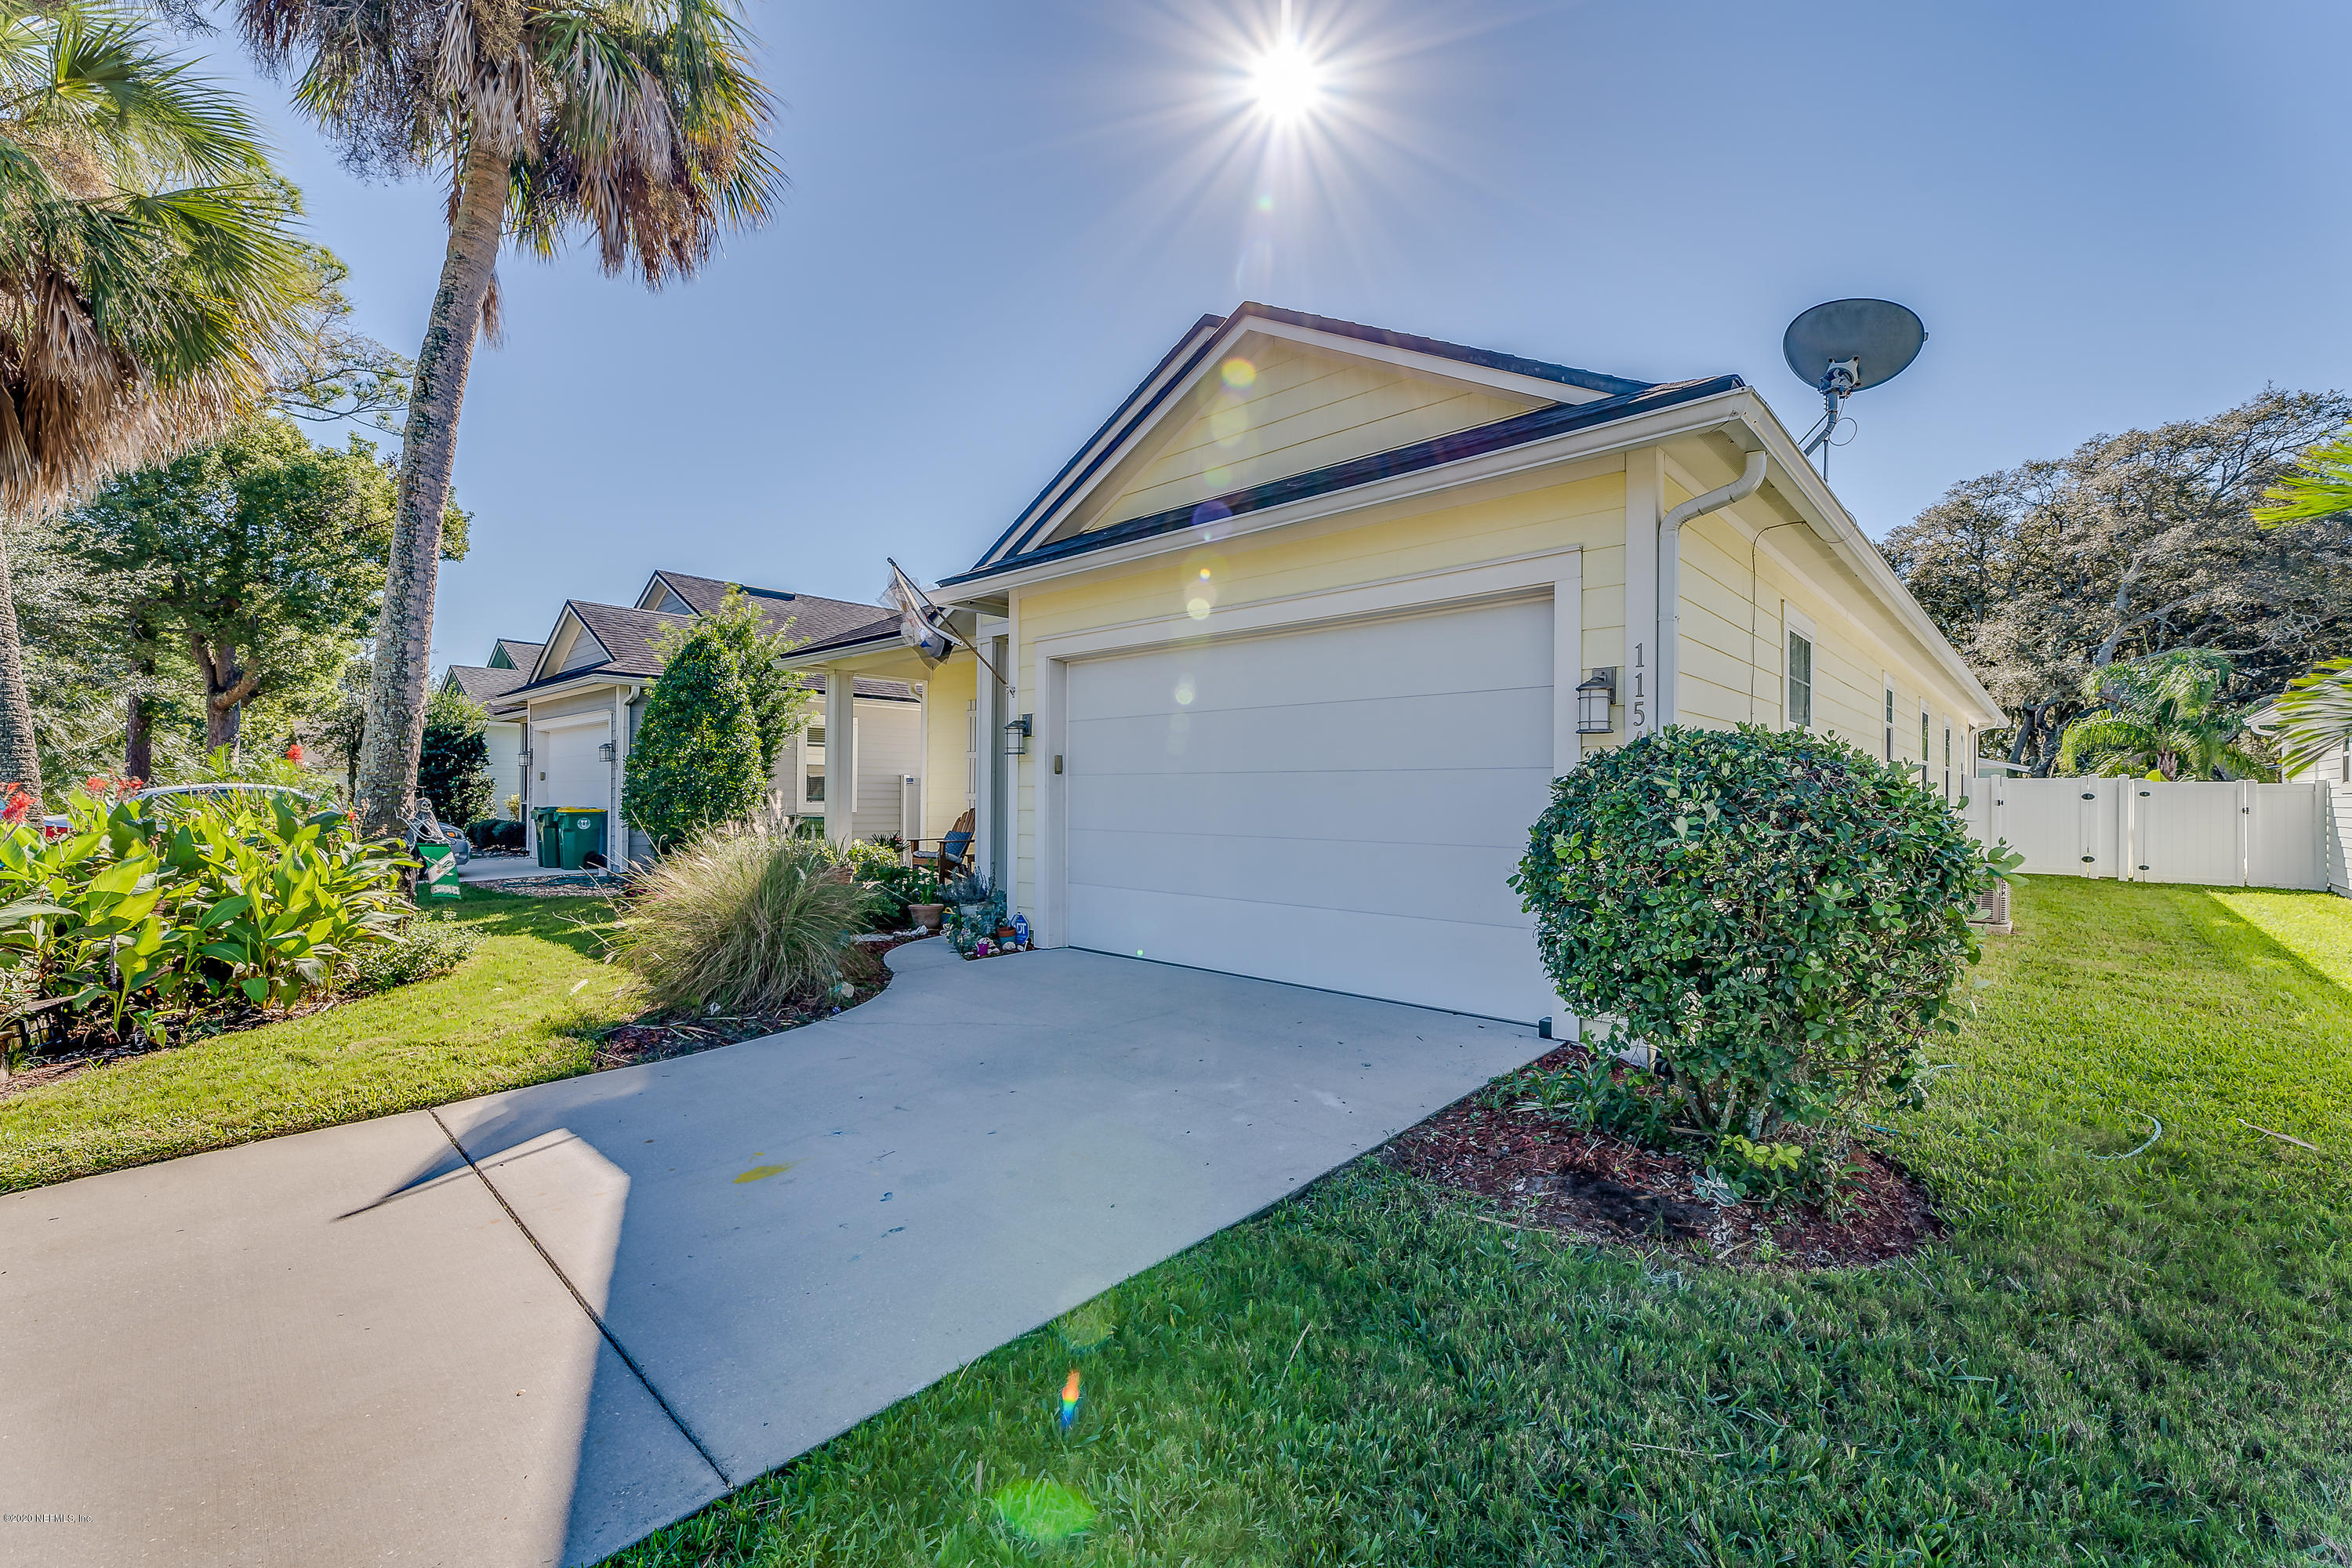 1154 16TH, JACKSONVILLE BEACH, FLORIDA 32250, 4 Bedrooms Bedrooms, ,2 BathroomsBathrooms,Residential,For sale,16TH,1080778